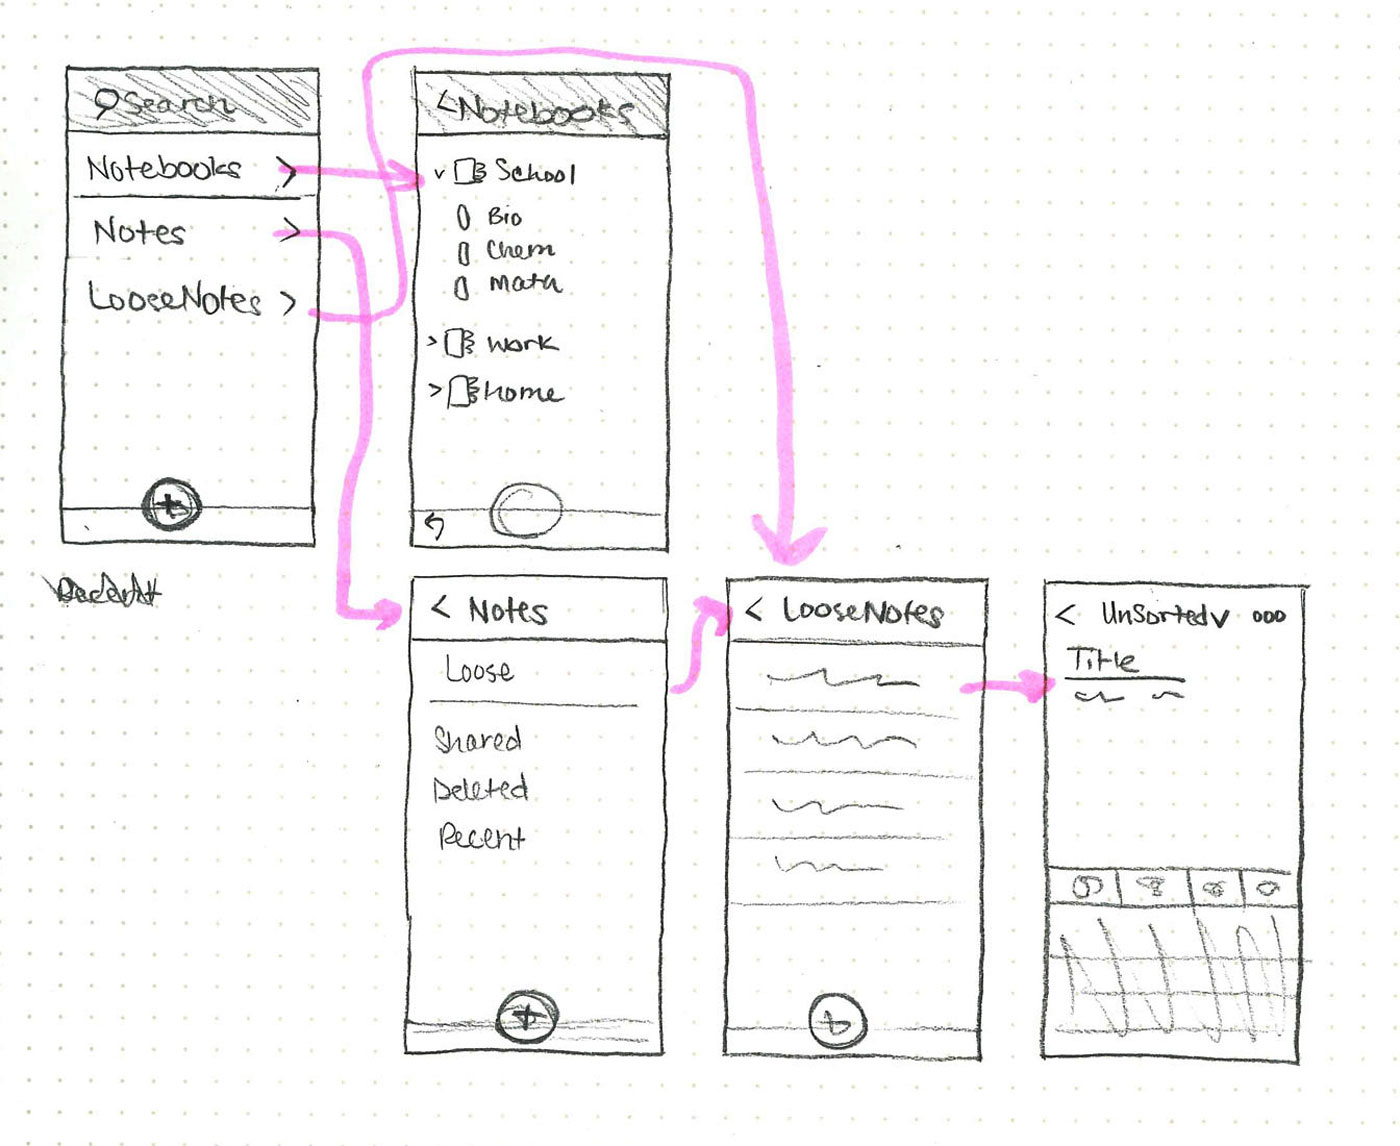 Scan of a sketchbook image illustrating an idea for organizing notes with the app